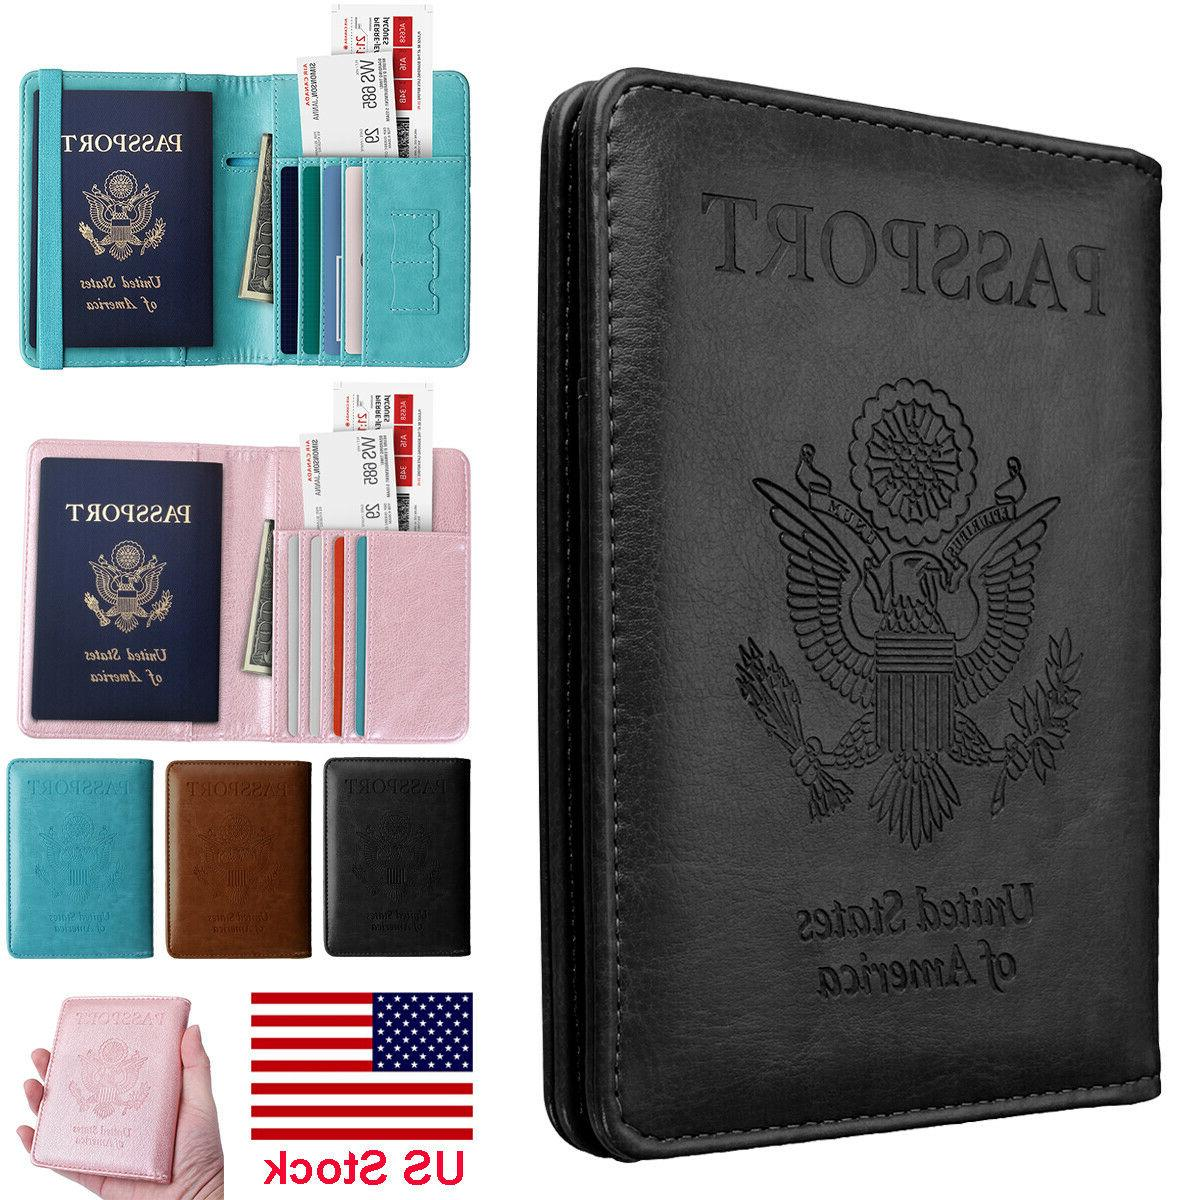 Premium Leather RFID Blocking Passport Travel Wallet Holder